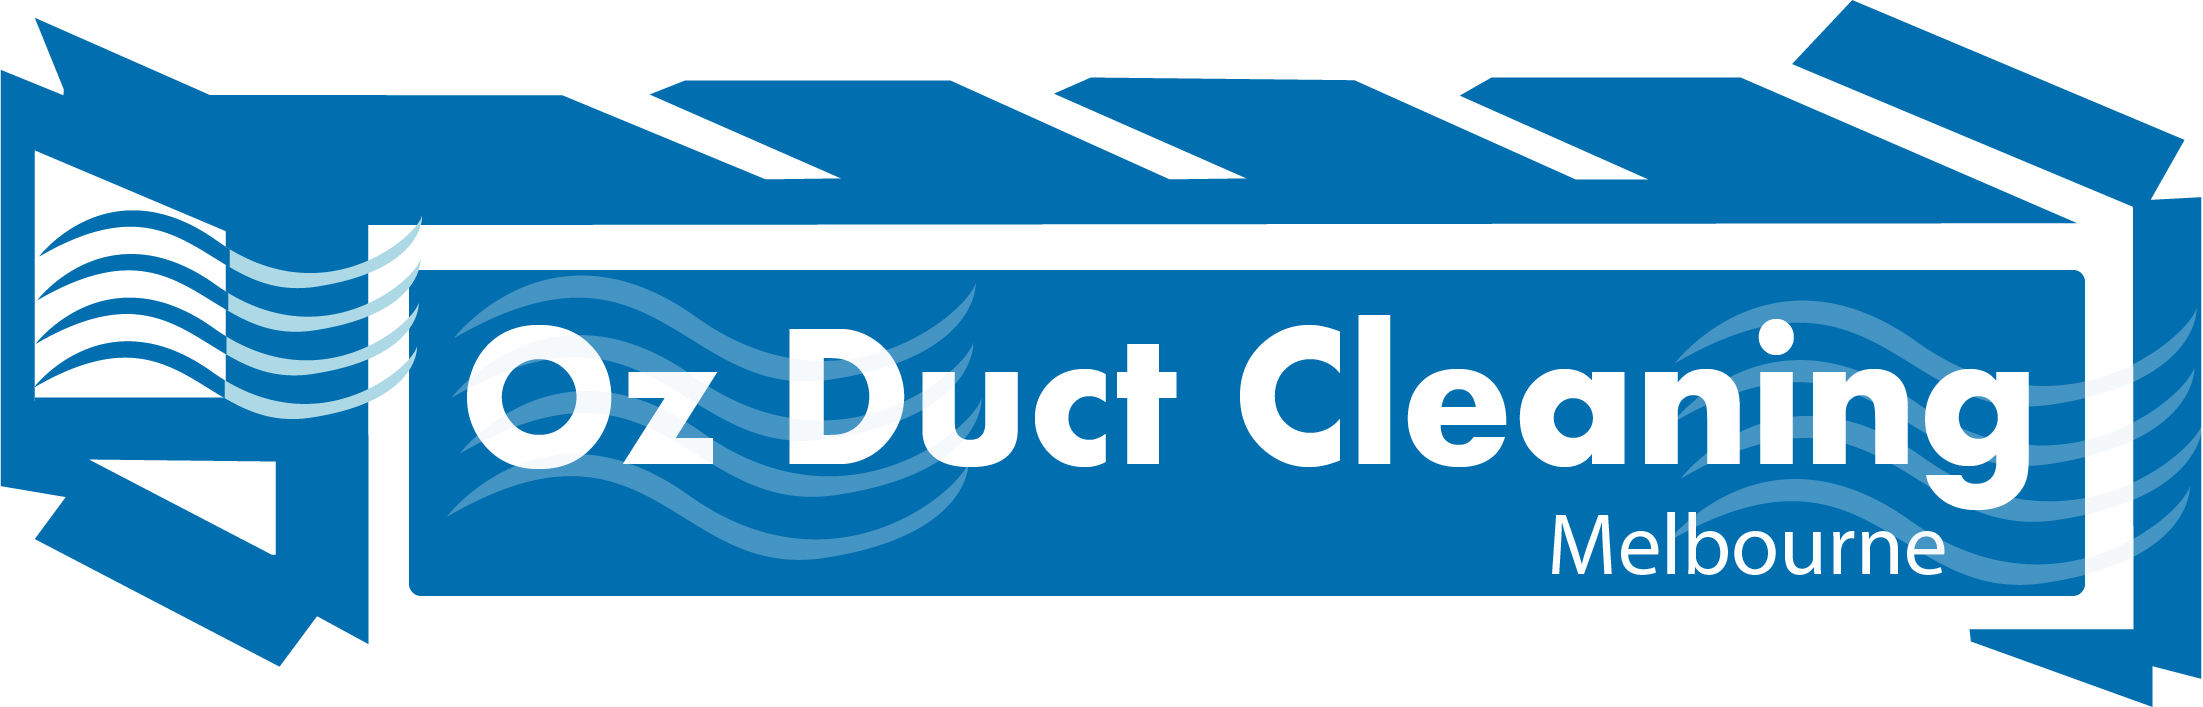 OZ Duct Cleaning Melbourne Company